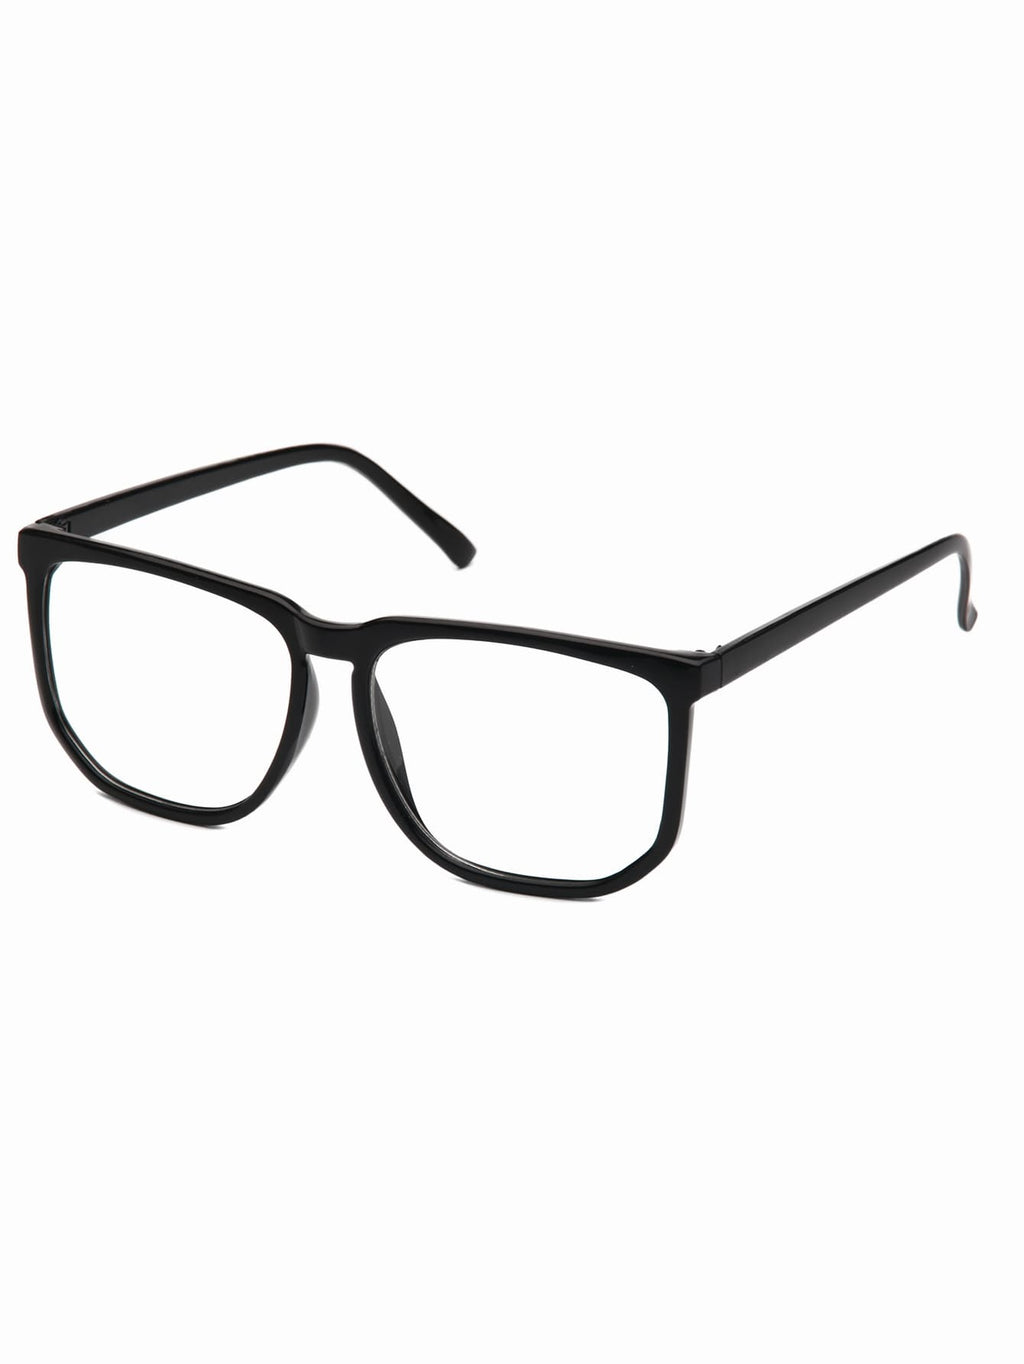 Men's Sunglasses - Plain Frame Glasses